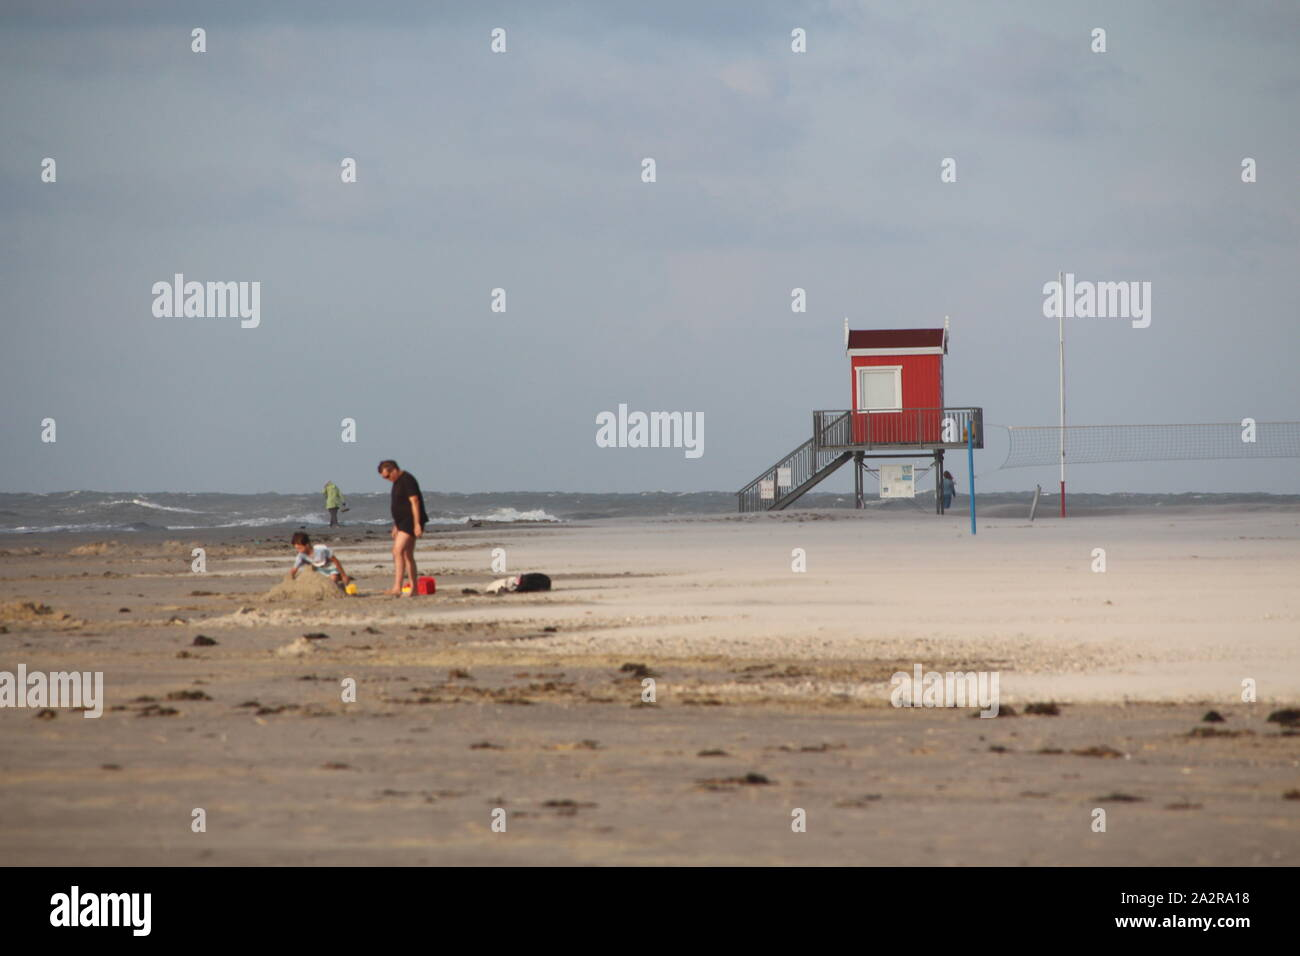 At the sandy beach of Langeoog island in Germany Stock Photo